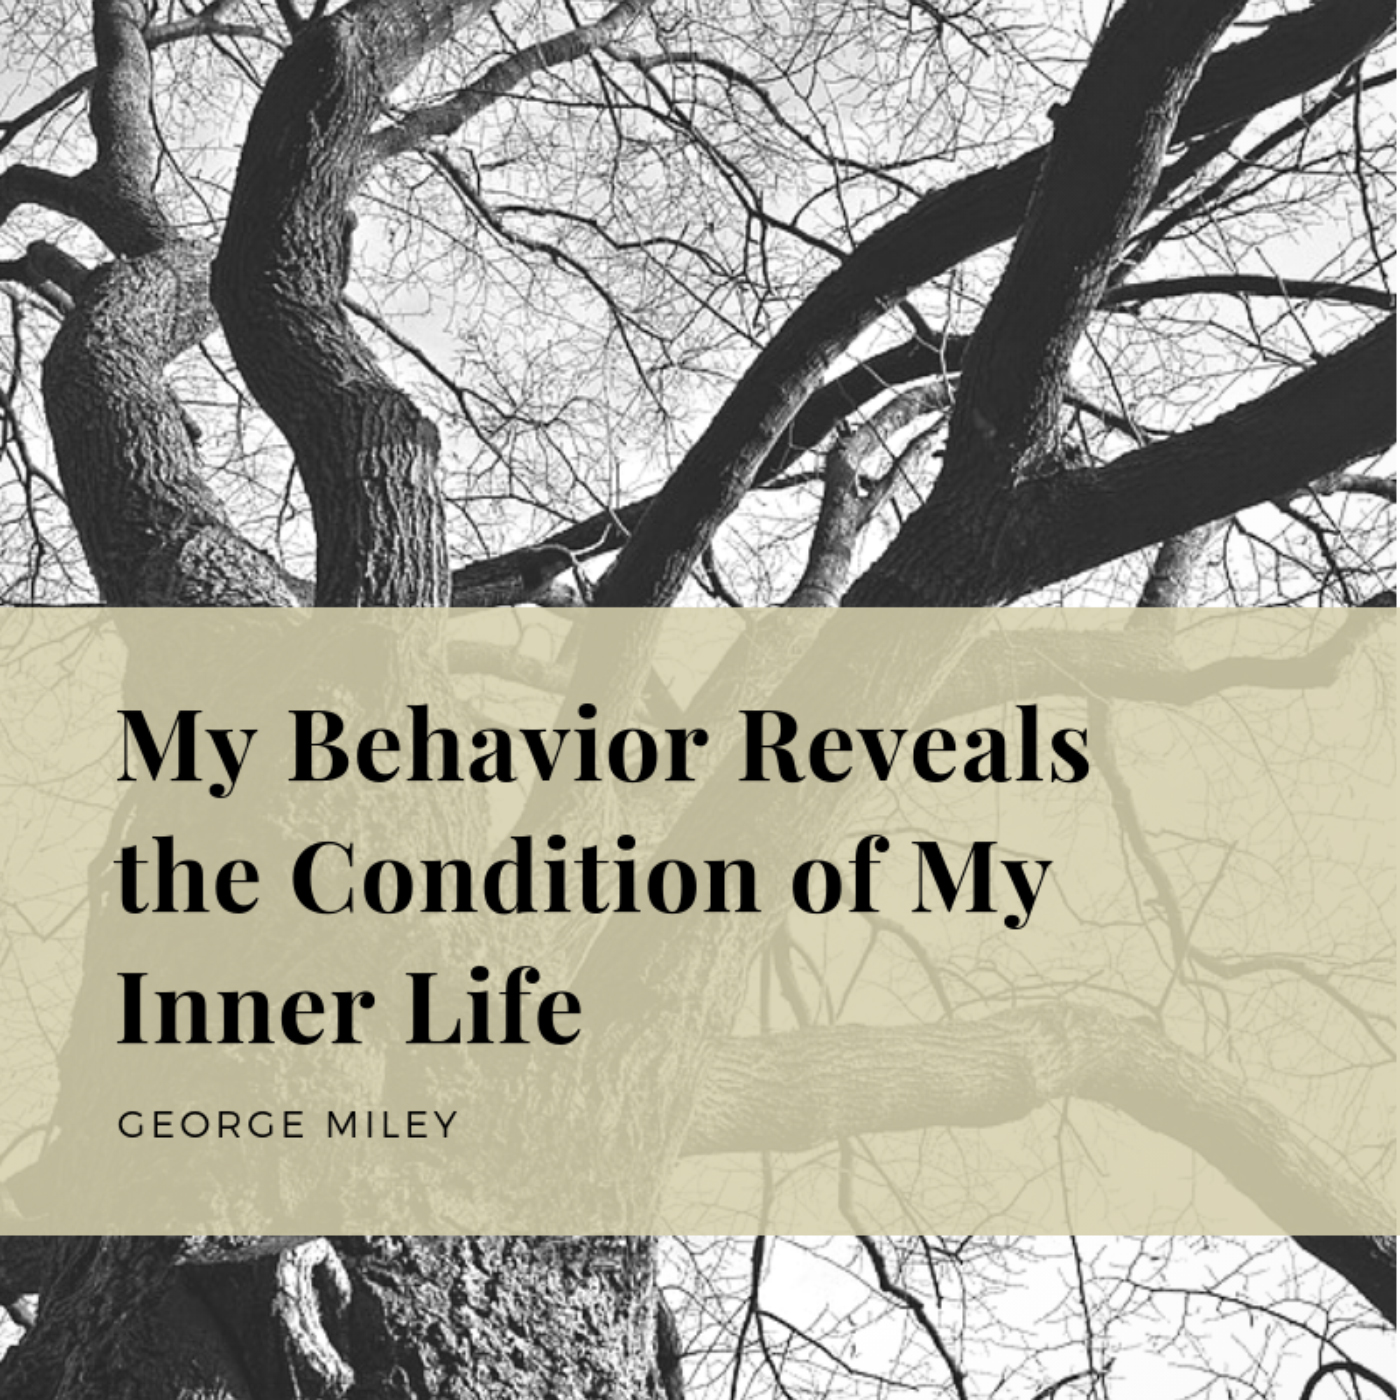 My Behavior Reveals the Condition of My Inner Life